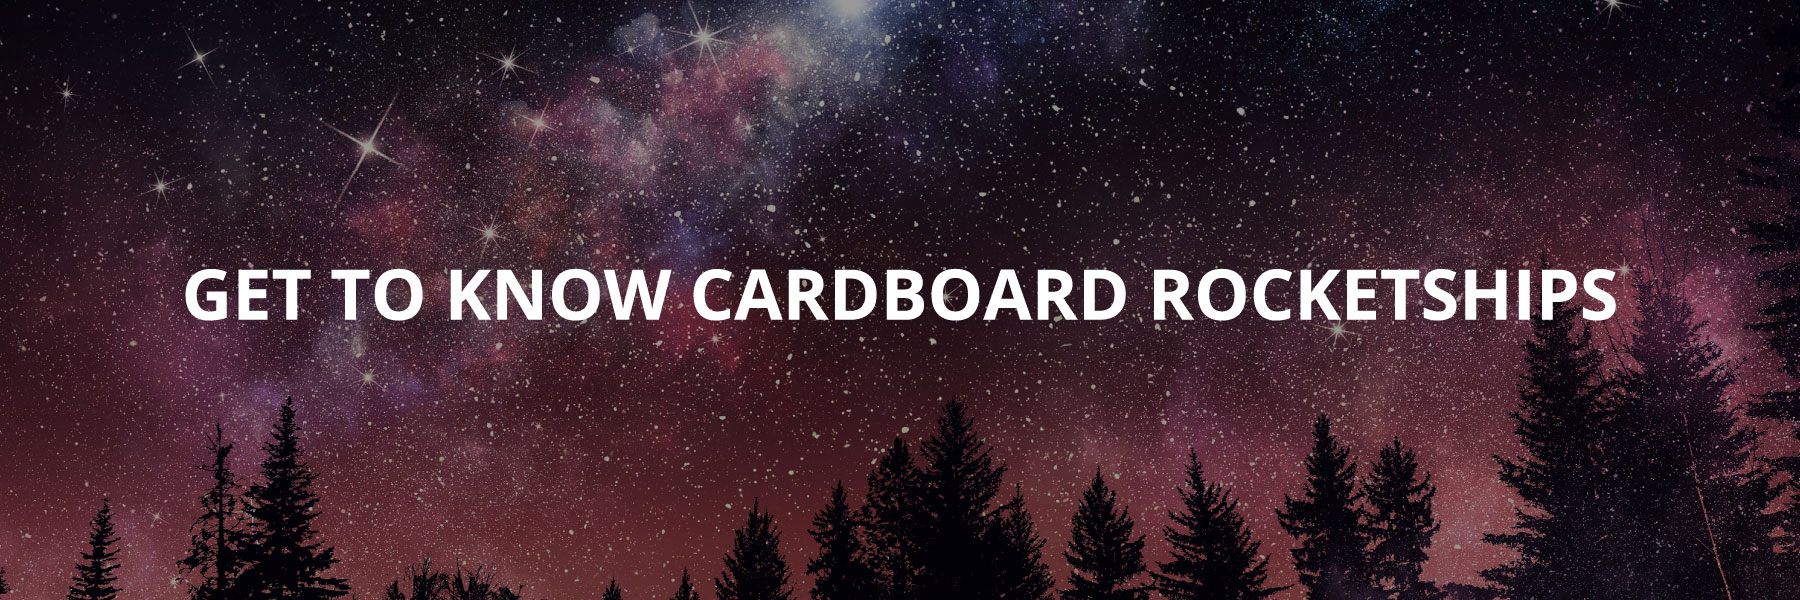 Learn More About Cardboard Rocketships